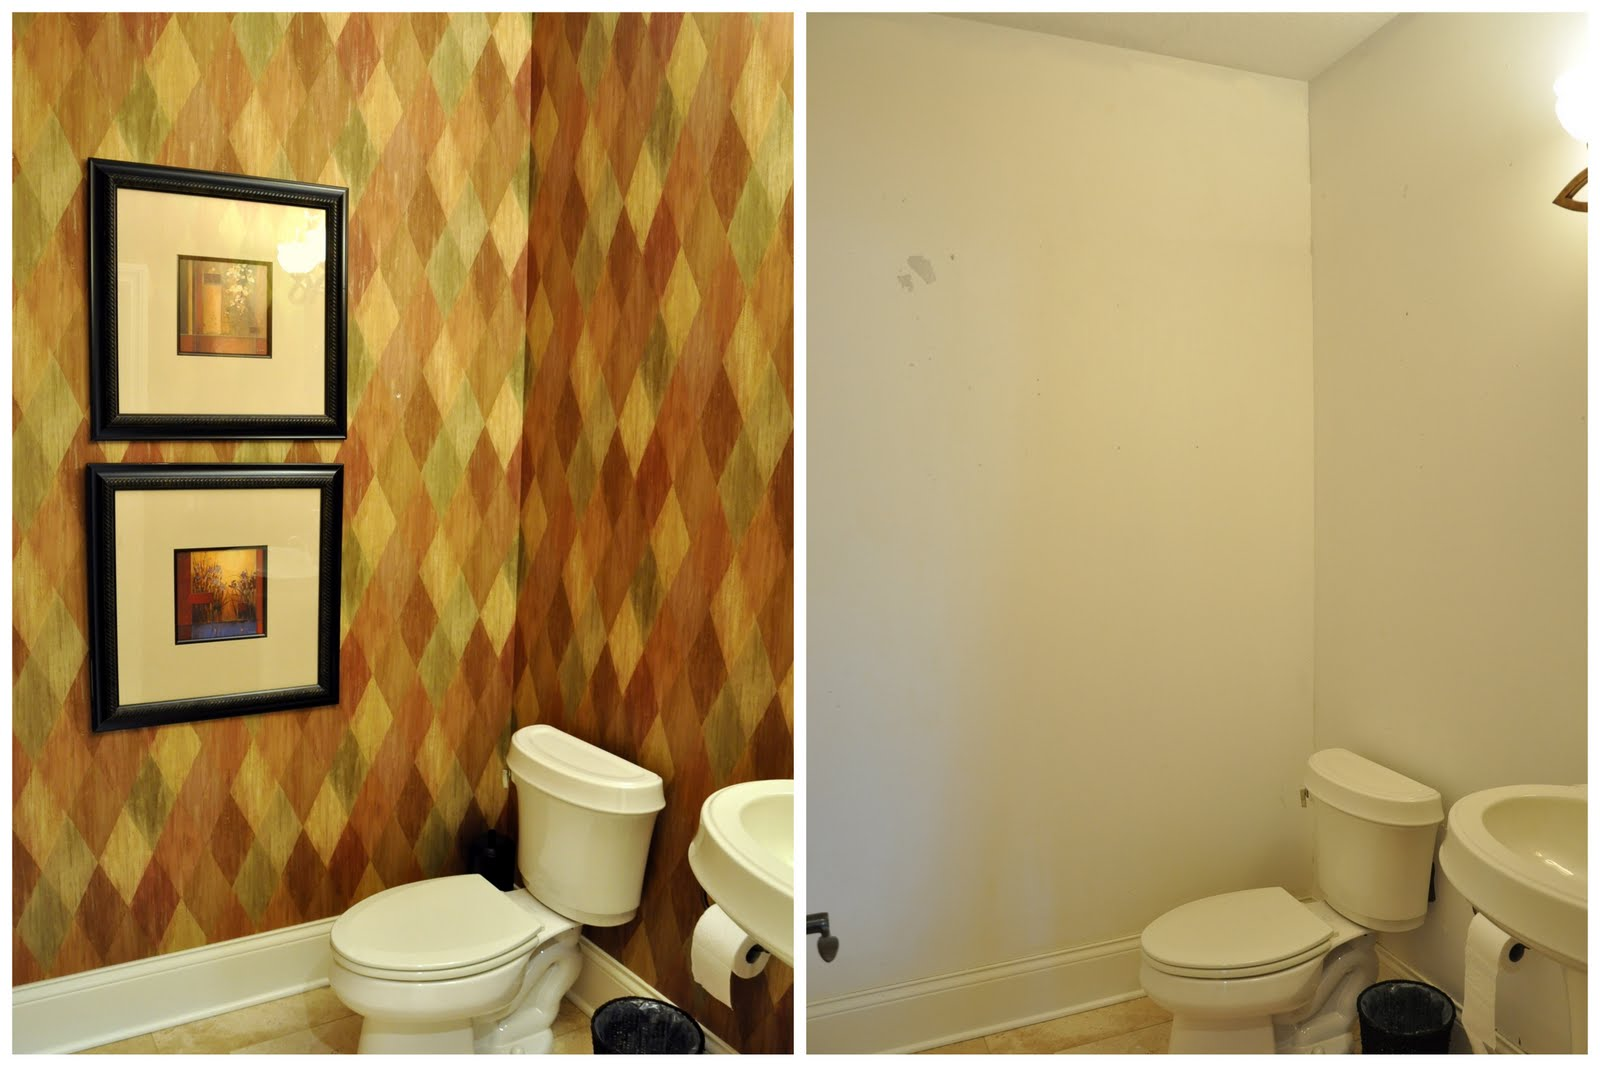 how to take wallpaper down with fabric softener